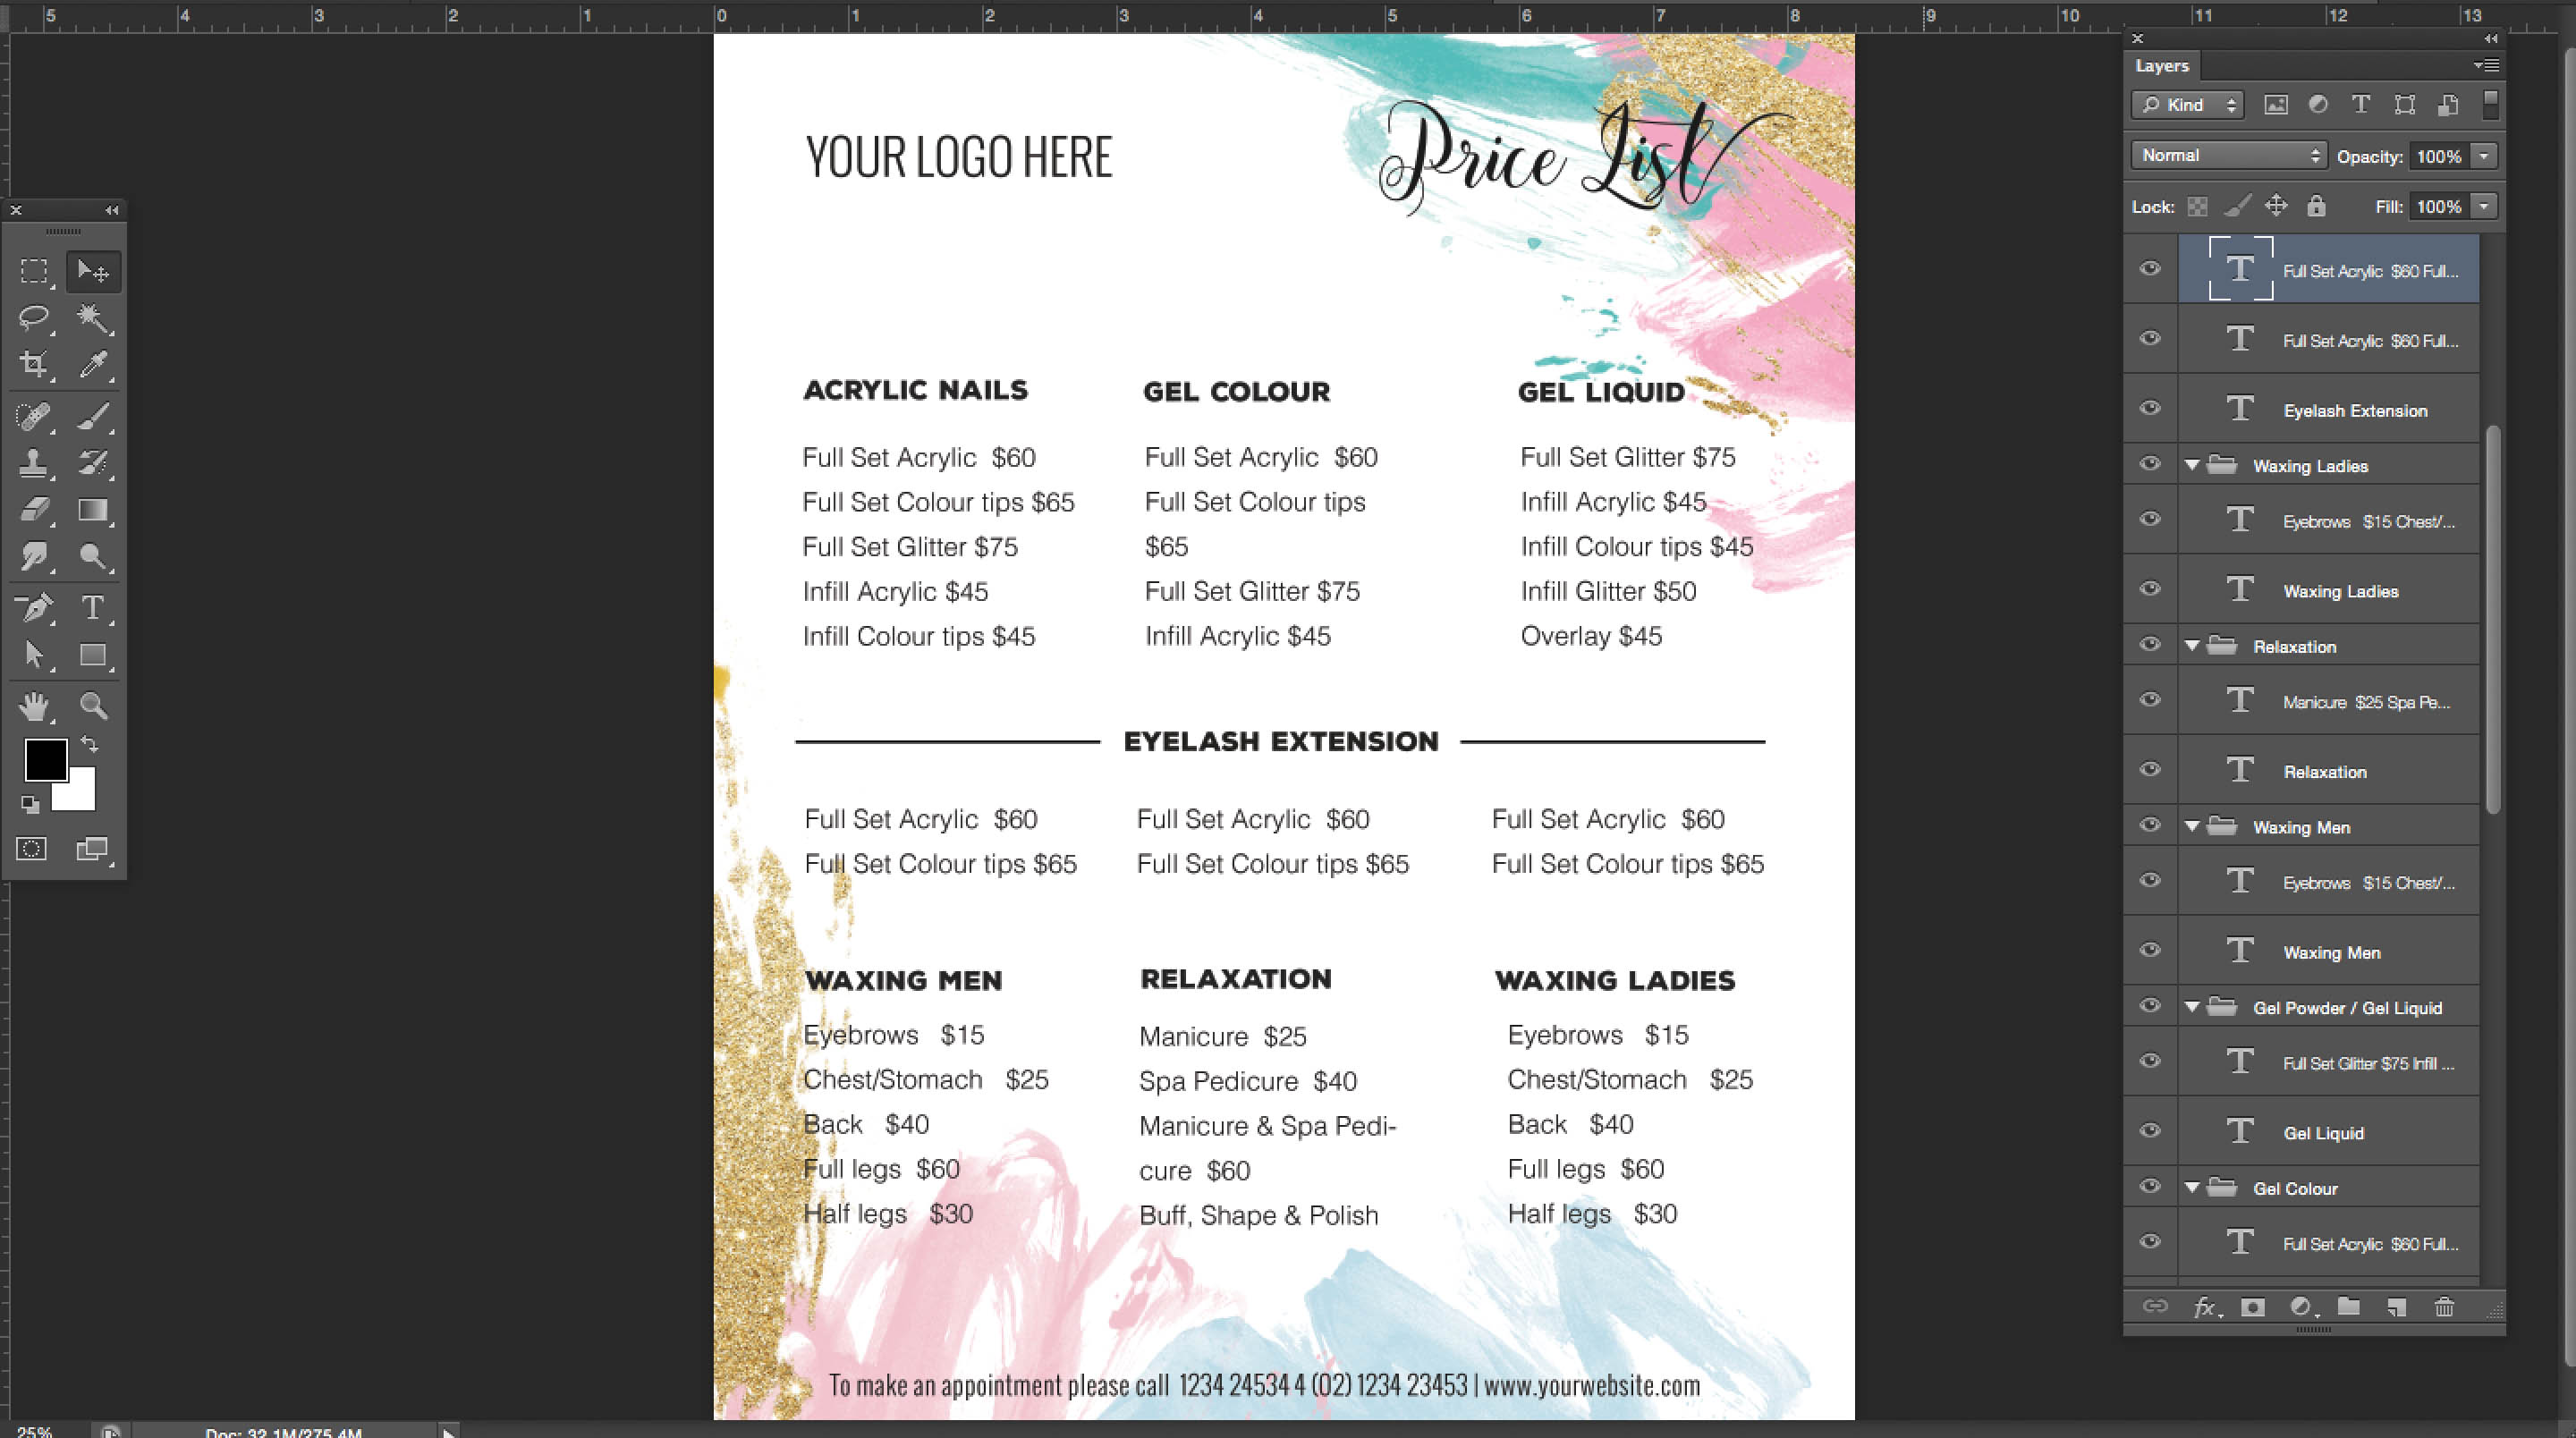 beautyproduct-pricing-list-menu-list Salon Newsletter Templates on free editable preschool, free office, adobe indesign, fun company, october preschool, free printable monthly,